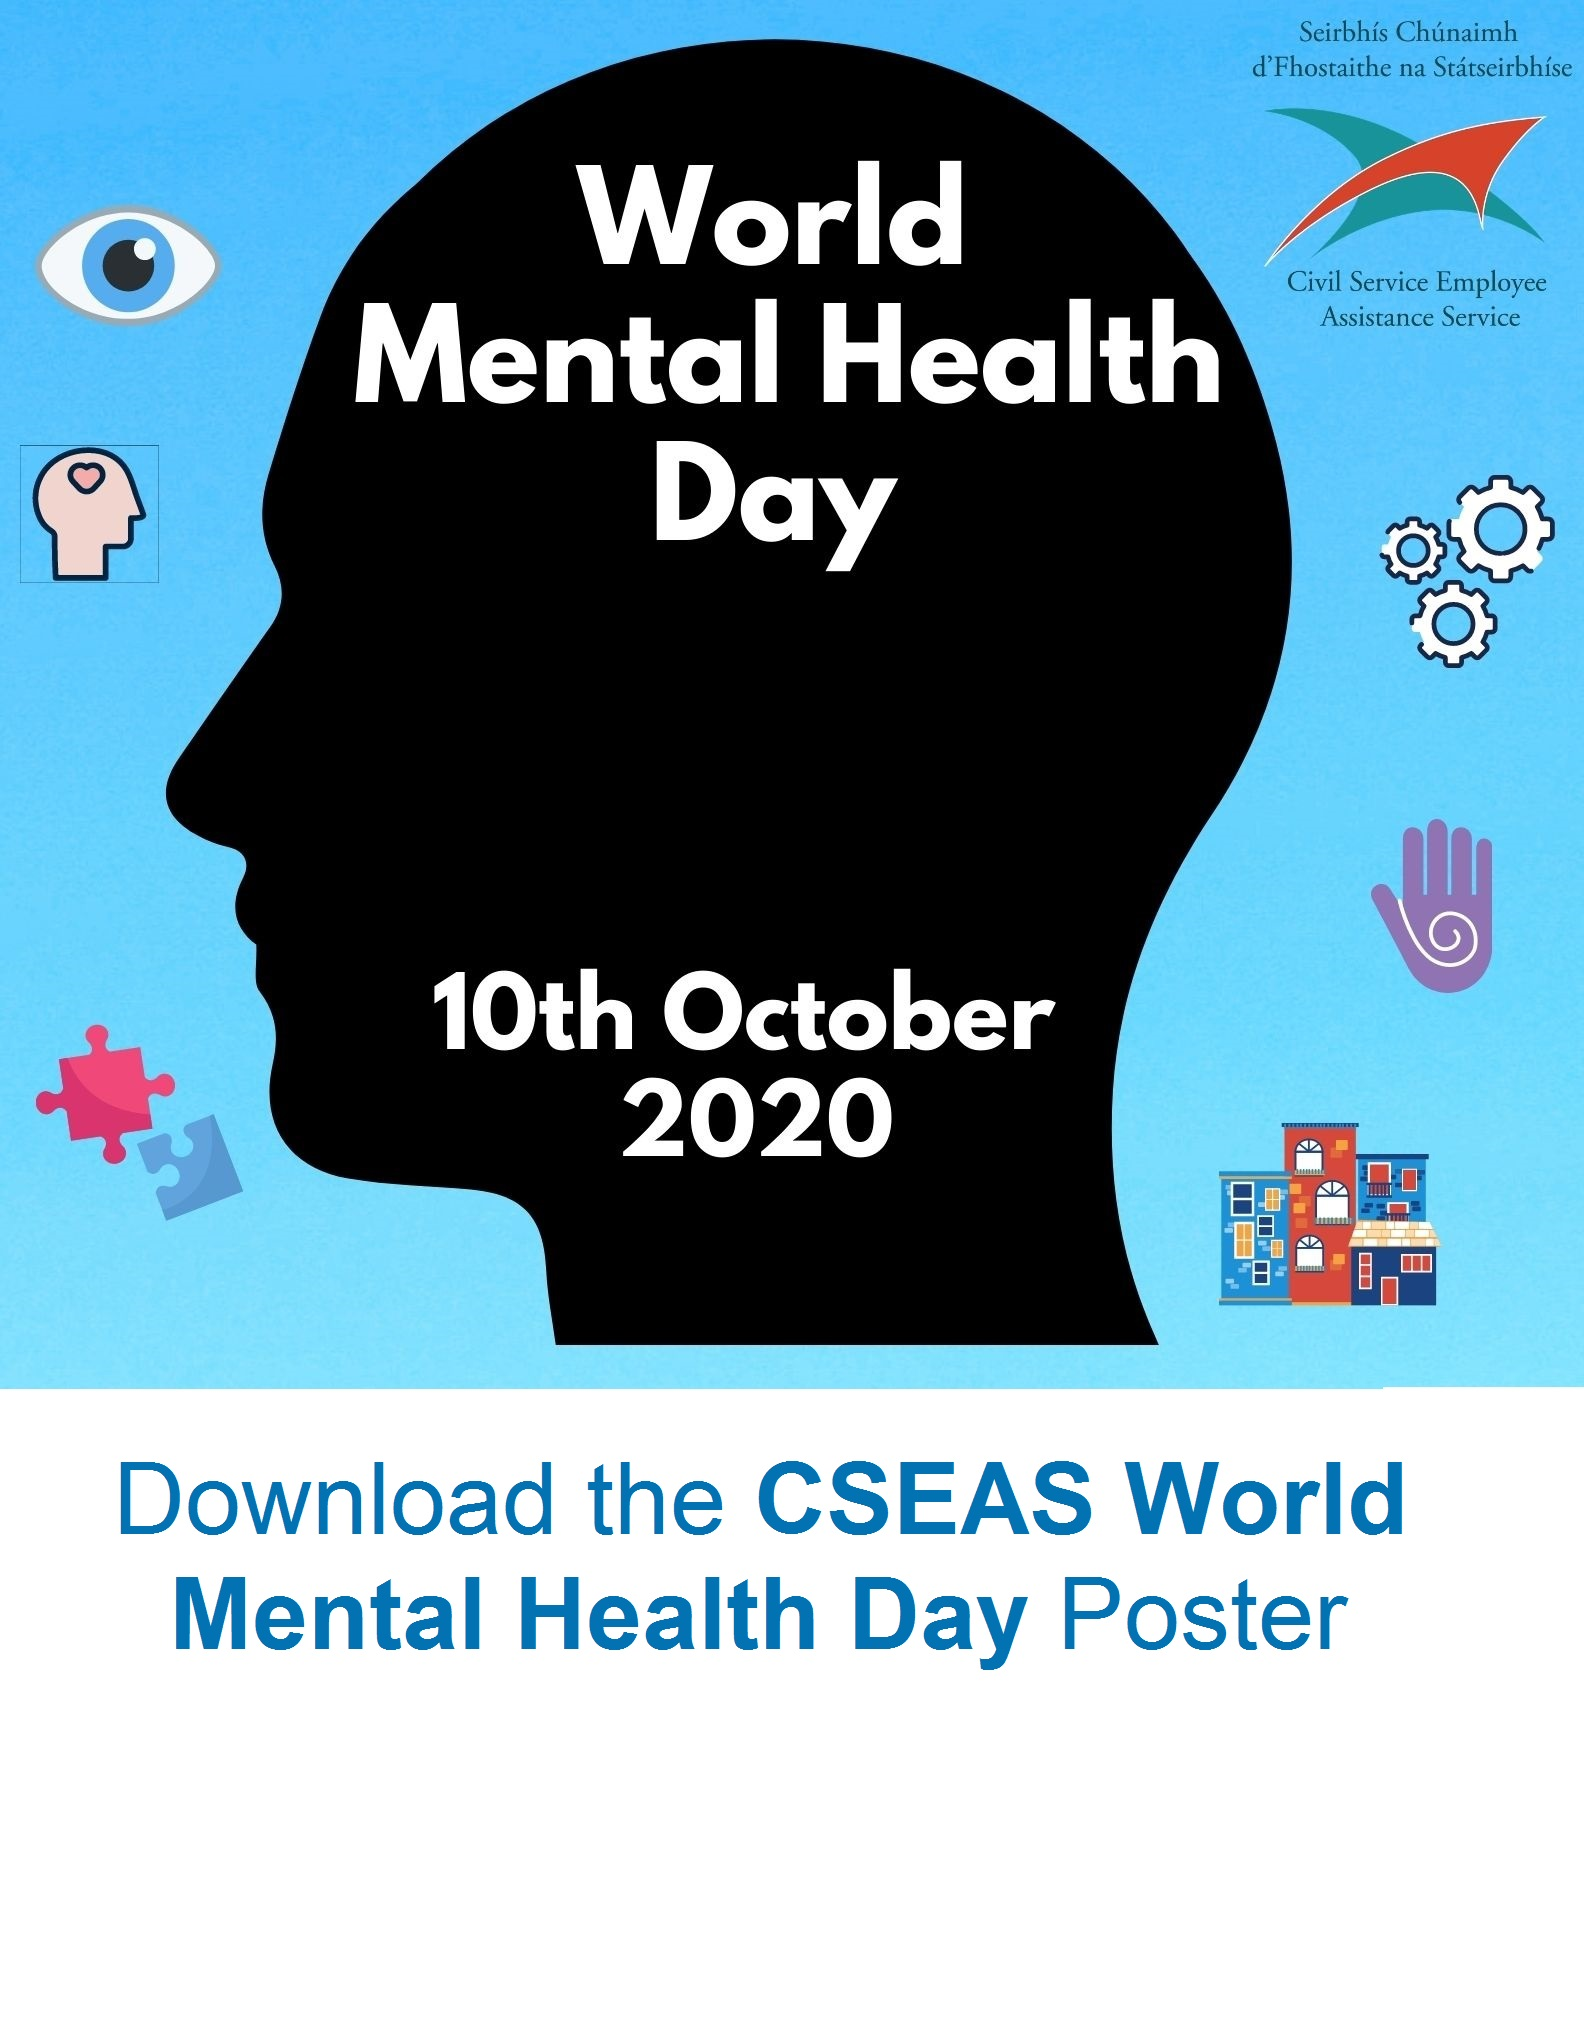 DOWNLOAD the CSEAS World Mental Health Day Poster